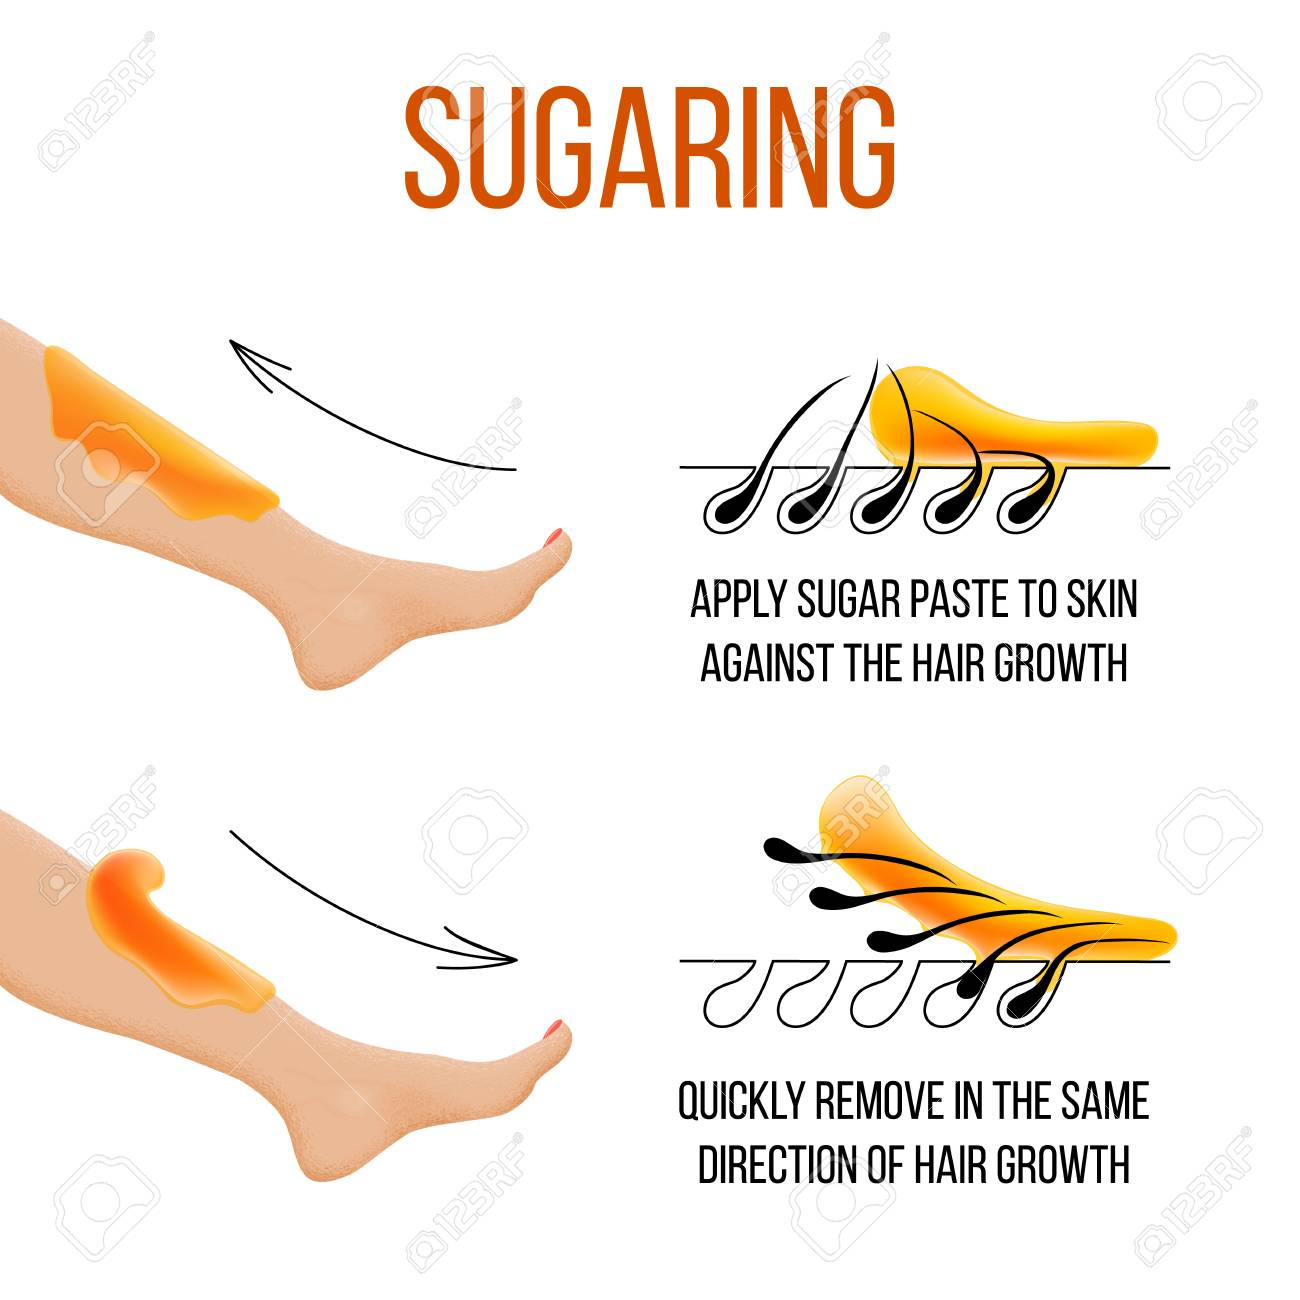 Depilation and sugaring  Hair removal  follicle  Woman leg with